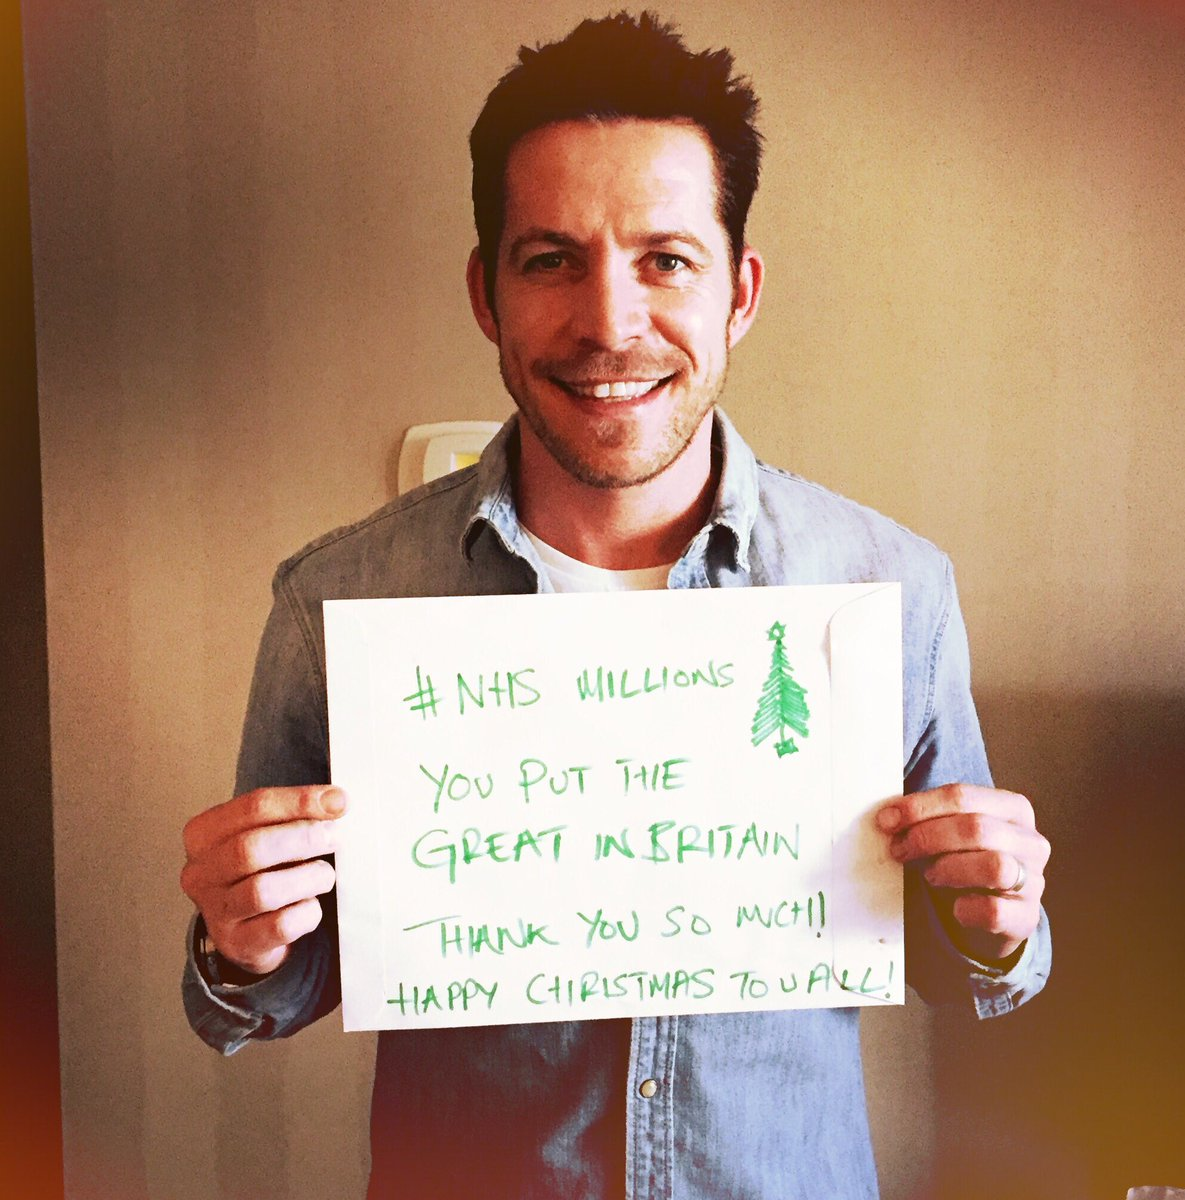 Sean Maguire: Media Tweets By Sean Maguire (@sean_m_maguire)